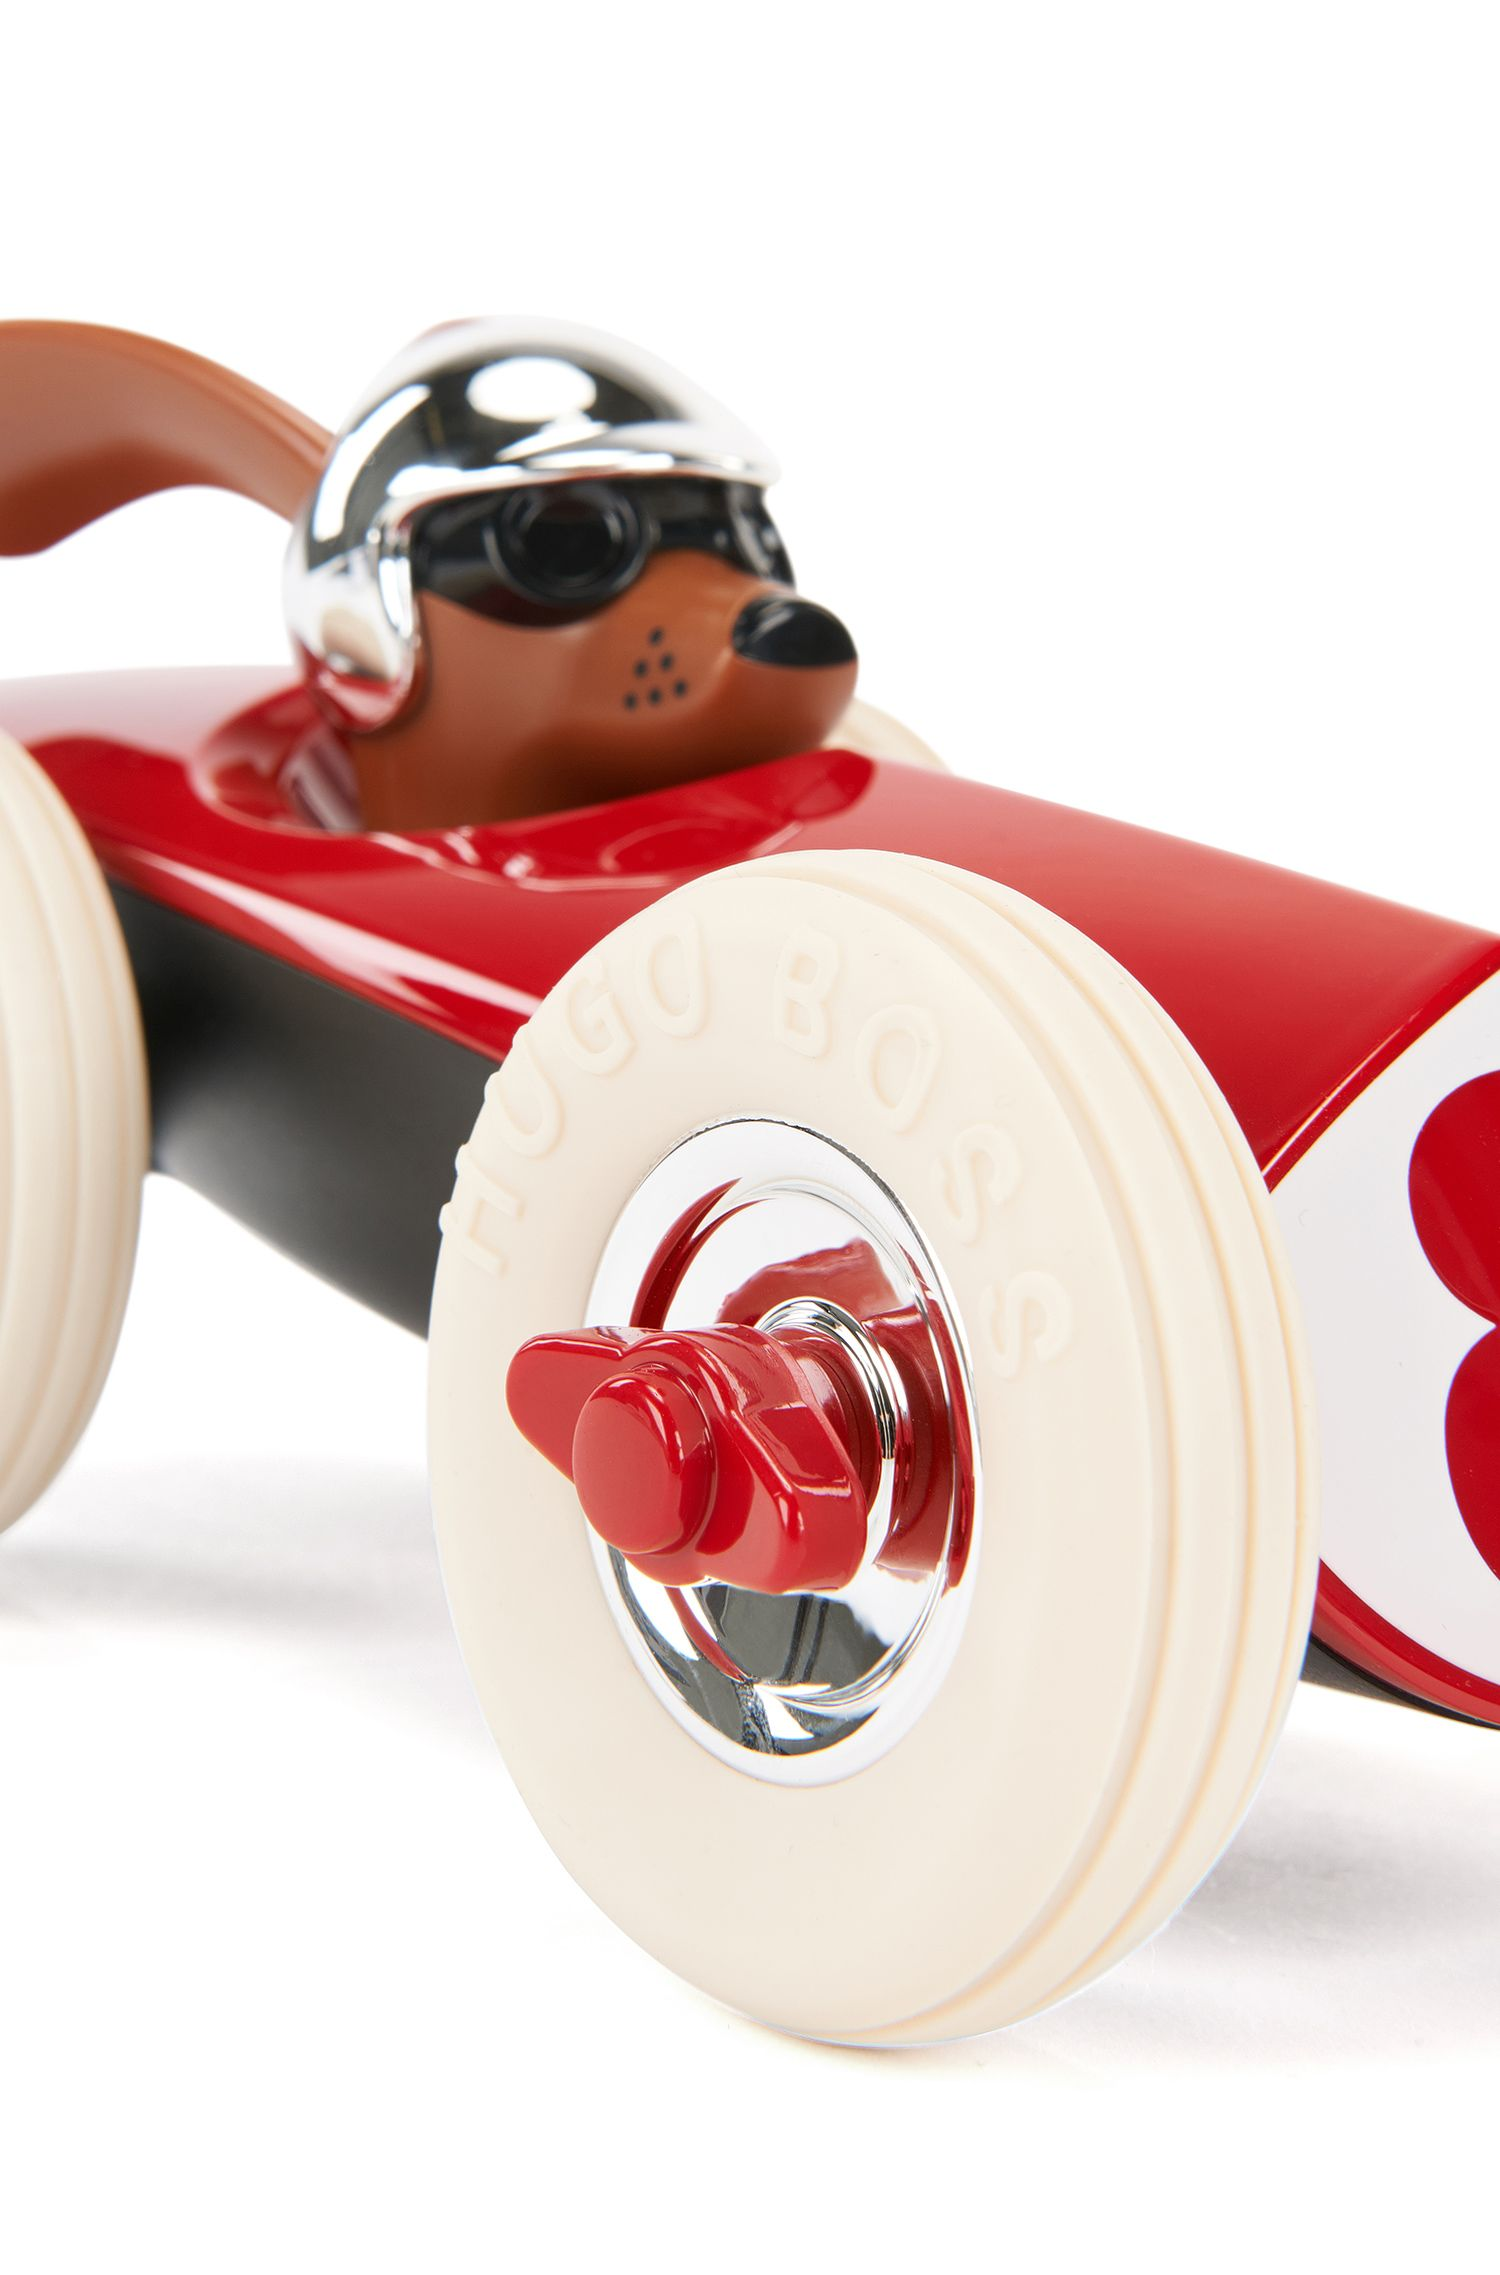 Model race car with glossy hand-polished finish